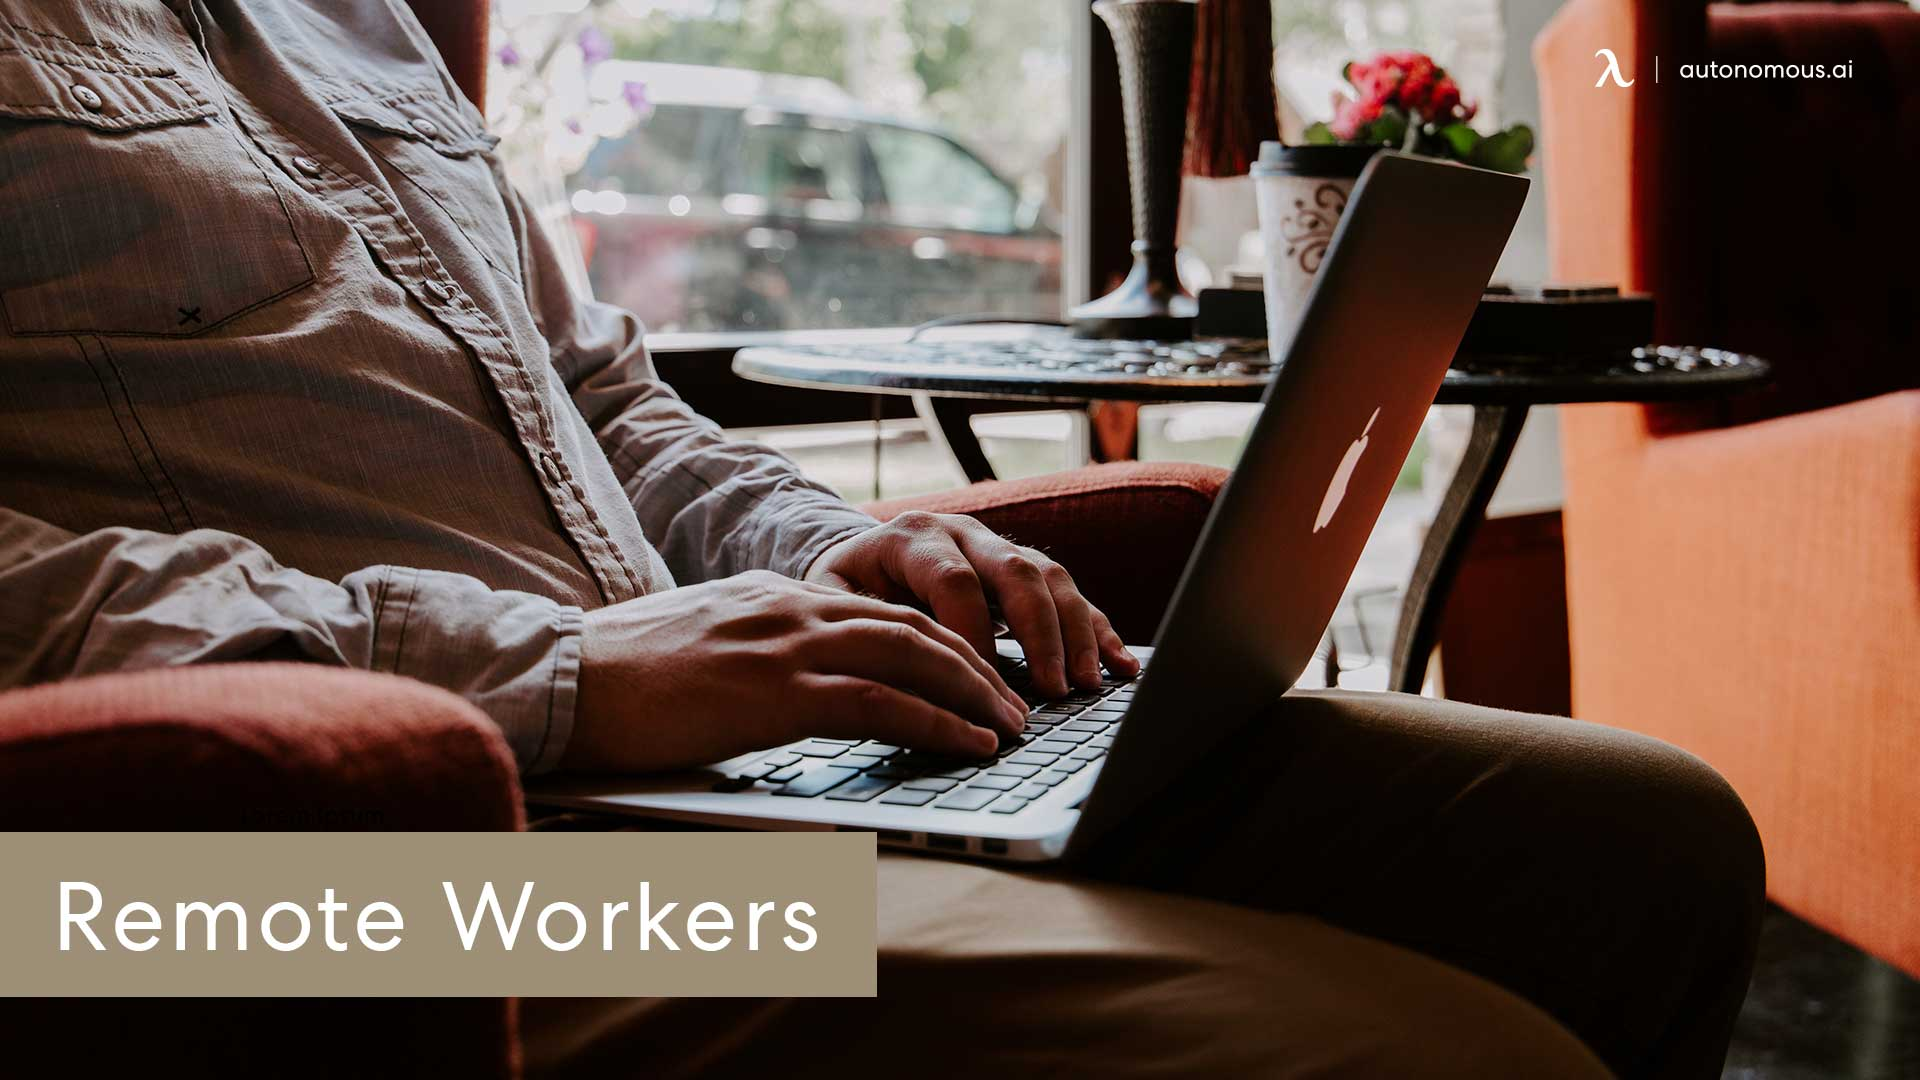 image of remote workers